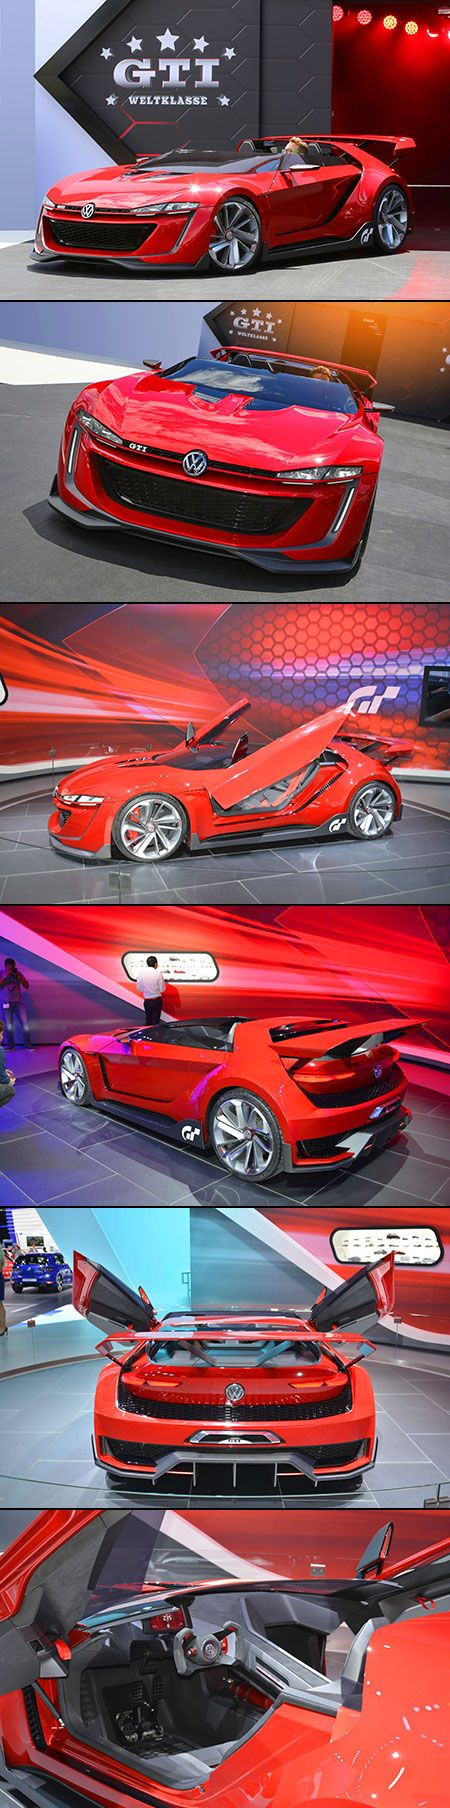 vw-concept-car-gti...coolest New VW ever.